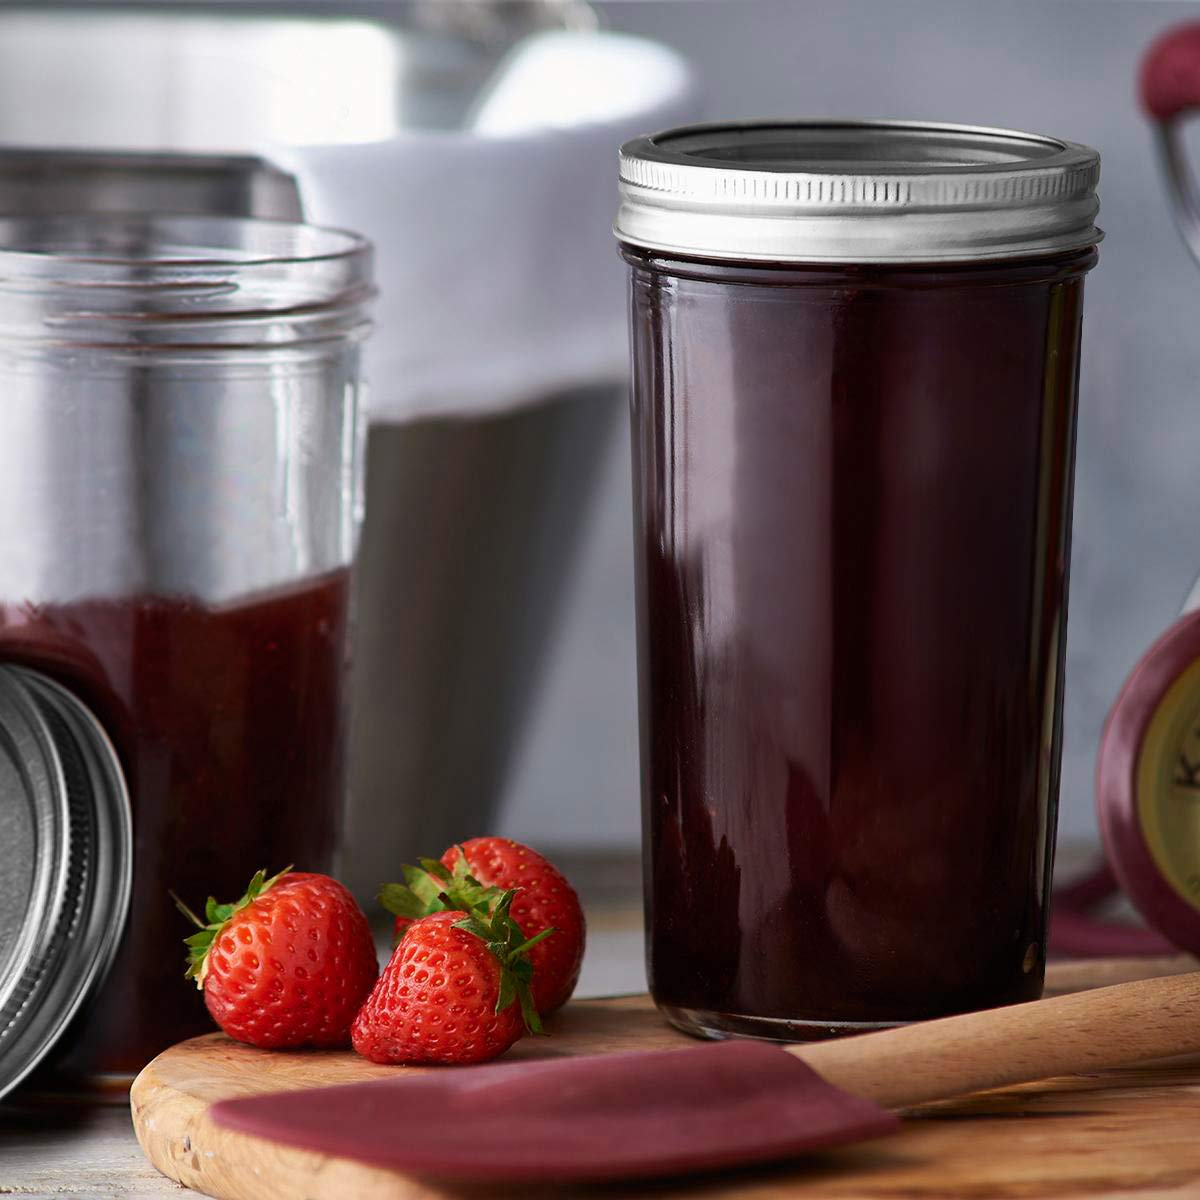 KAMOTA Wide Mouth Mason Jars 22 oz With Regular Lids and Bands, Ideal for Jam, Honey, Wedding Favors, Shower Favors, Baby Foods, DIY Magnetic Spice Jars, 12 PACK, 12 Silver Pipette Covers Included